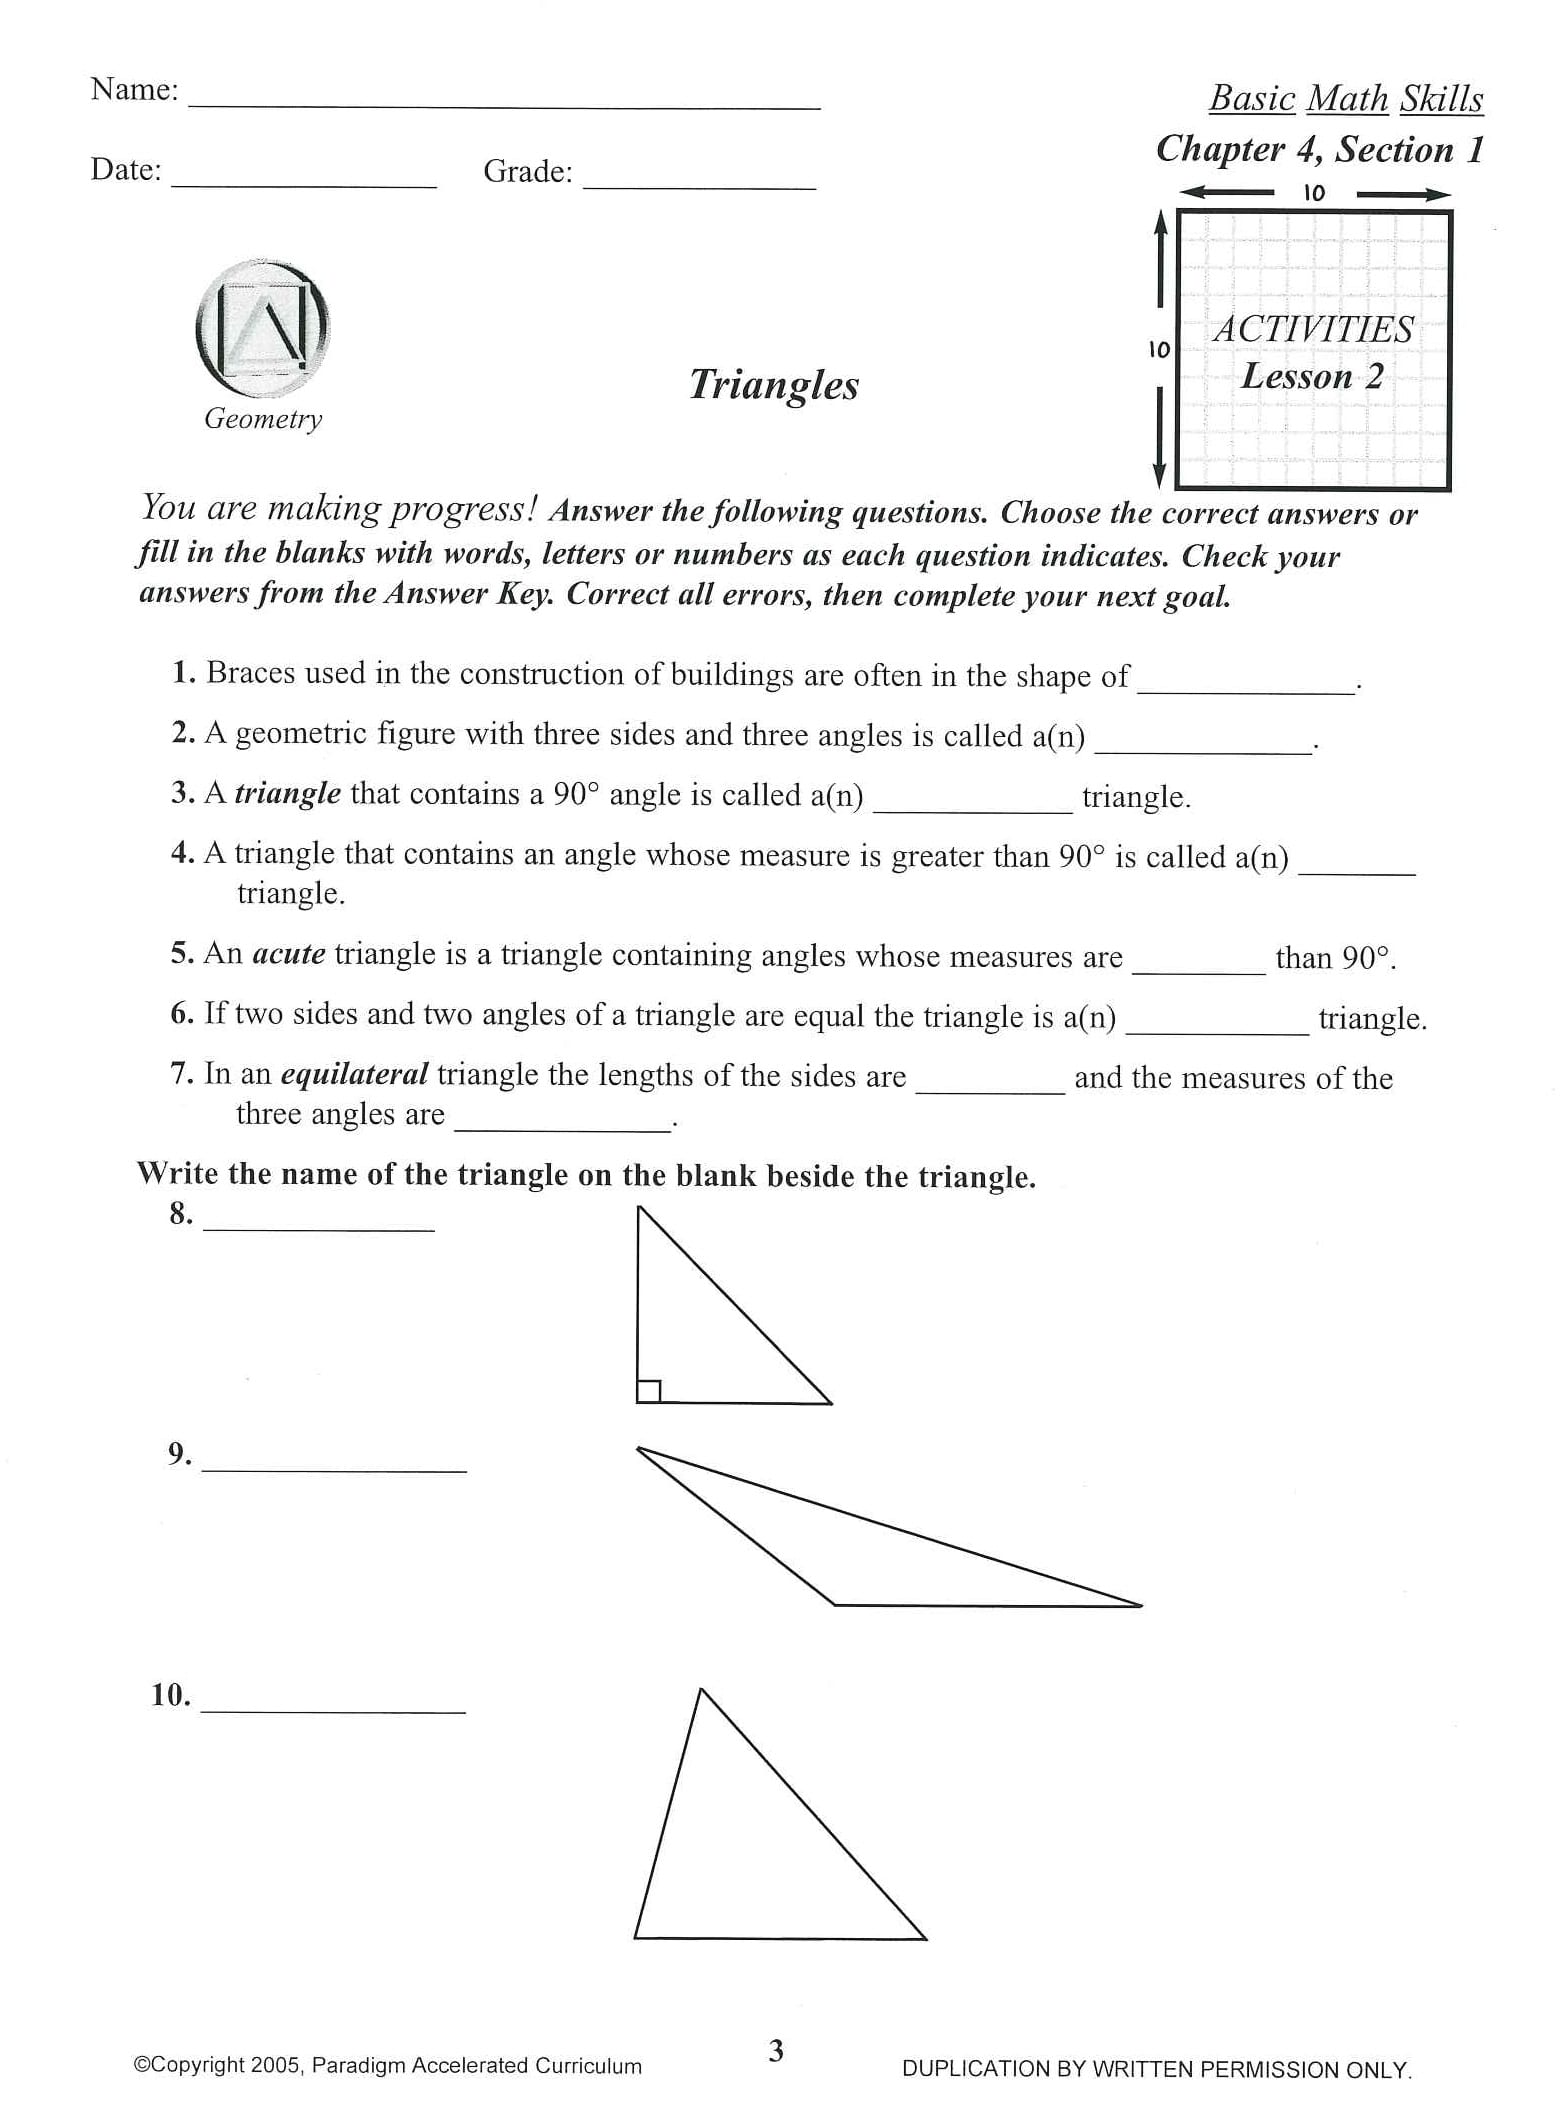 Basic Math Skills Chapter 4 Activities Save Now